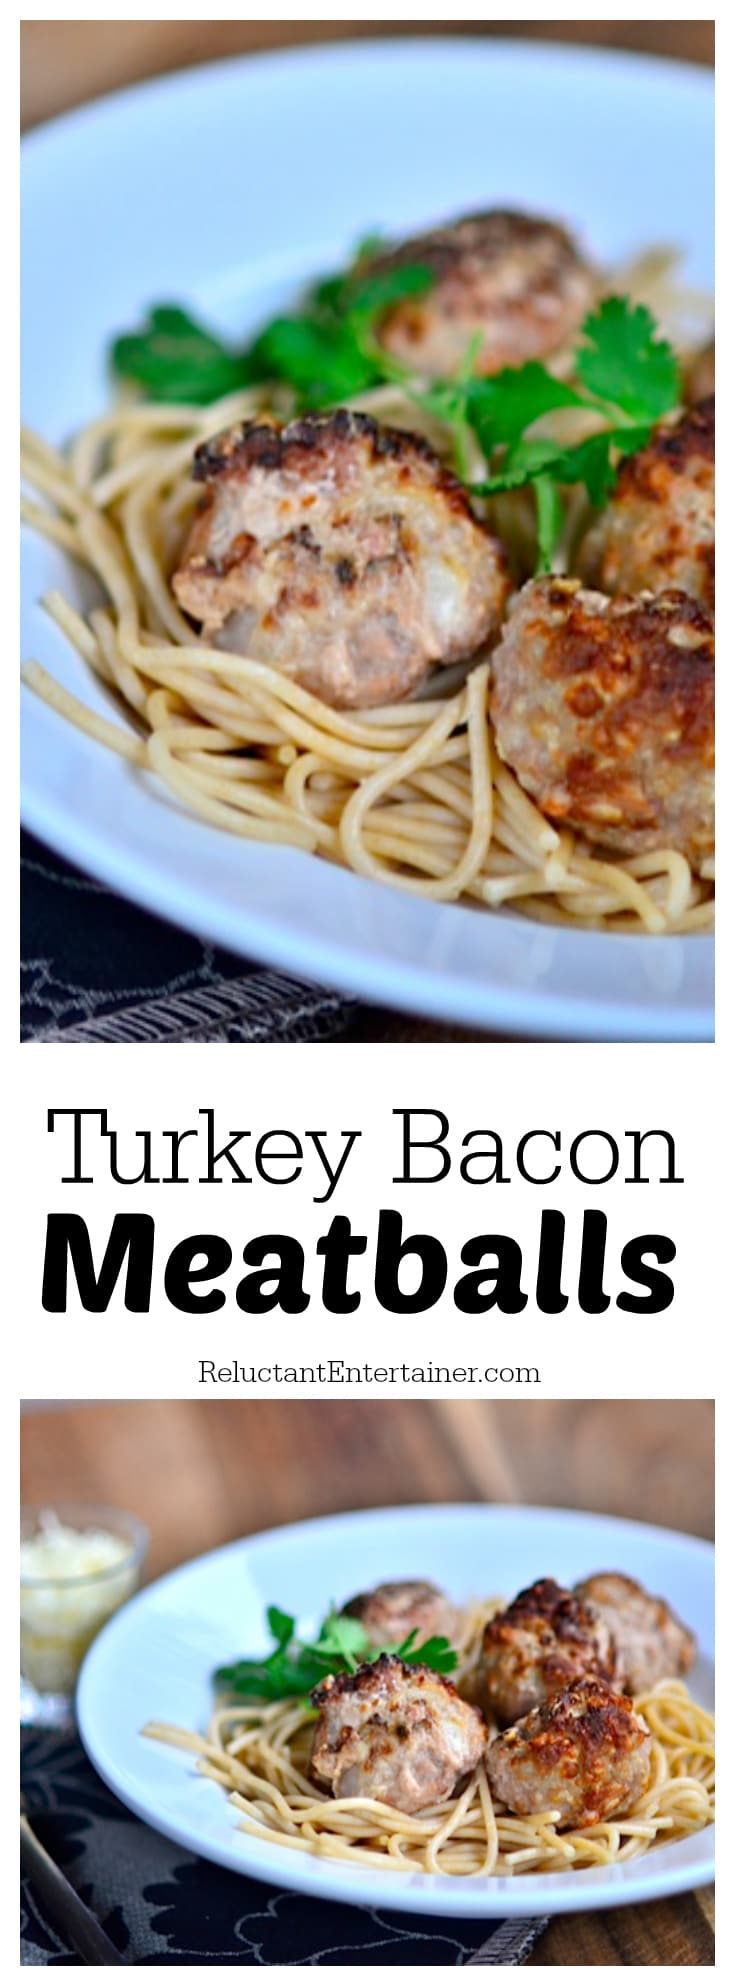 Turkey Bacon Meatballs Recipe